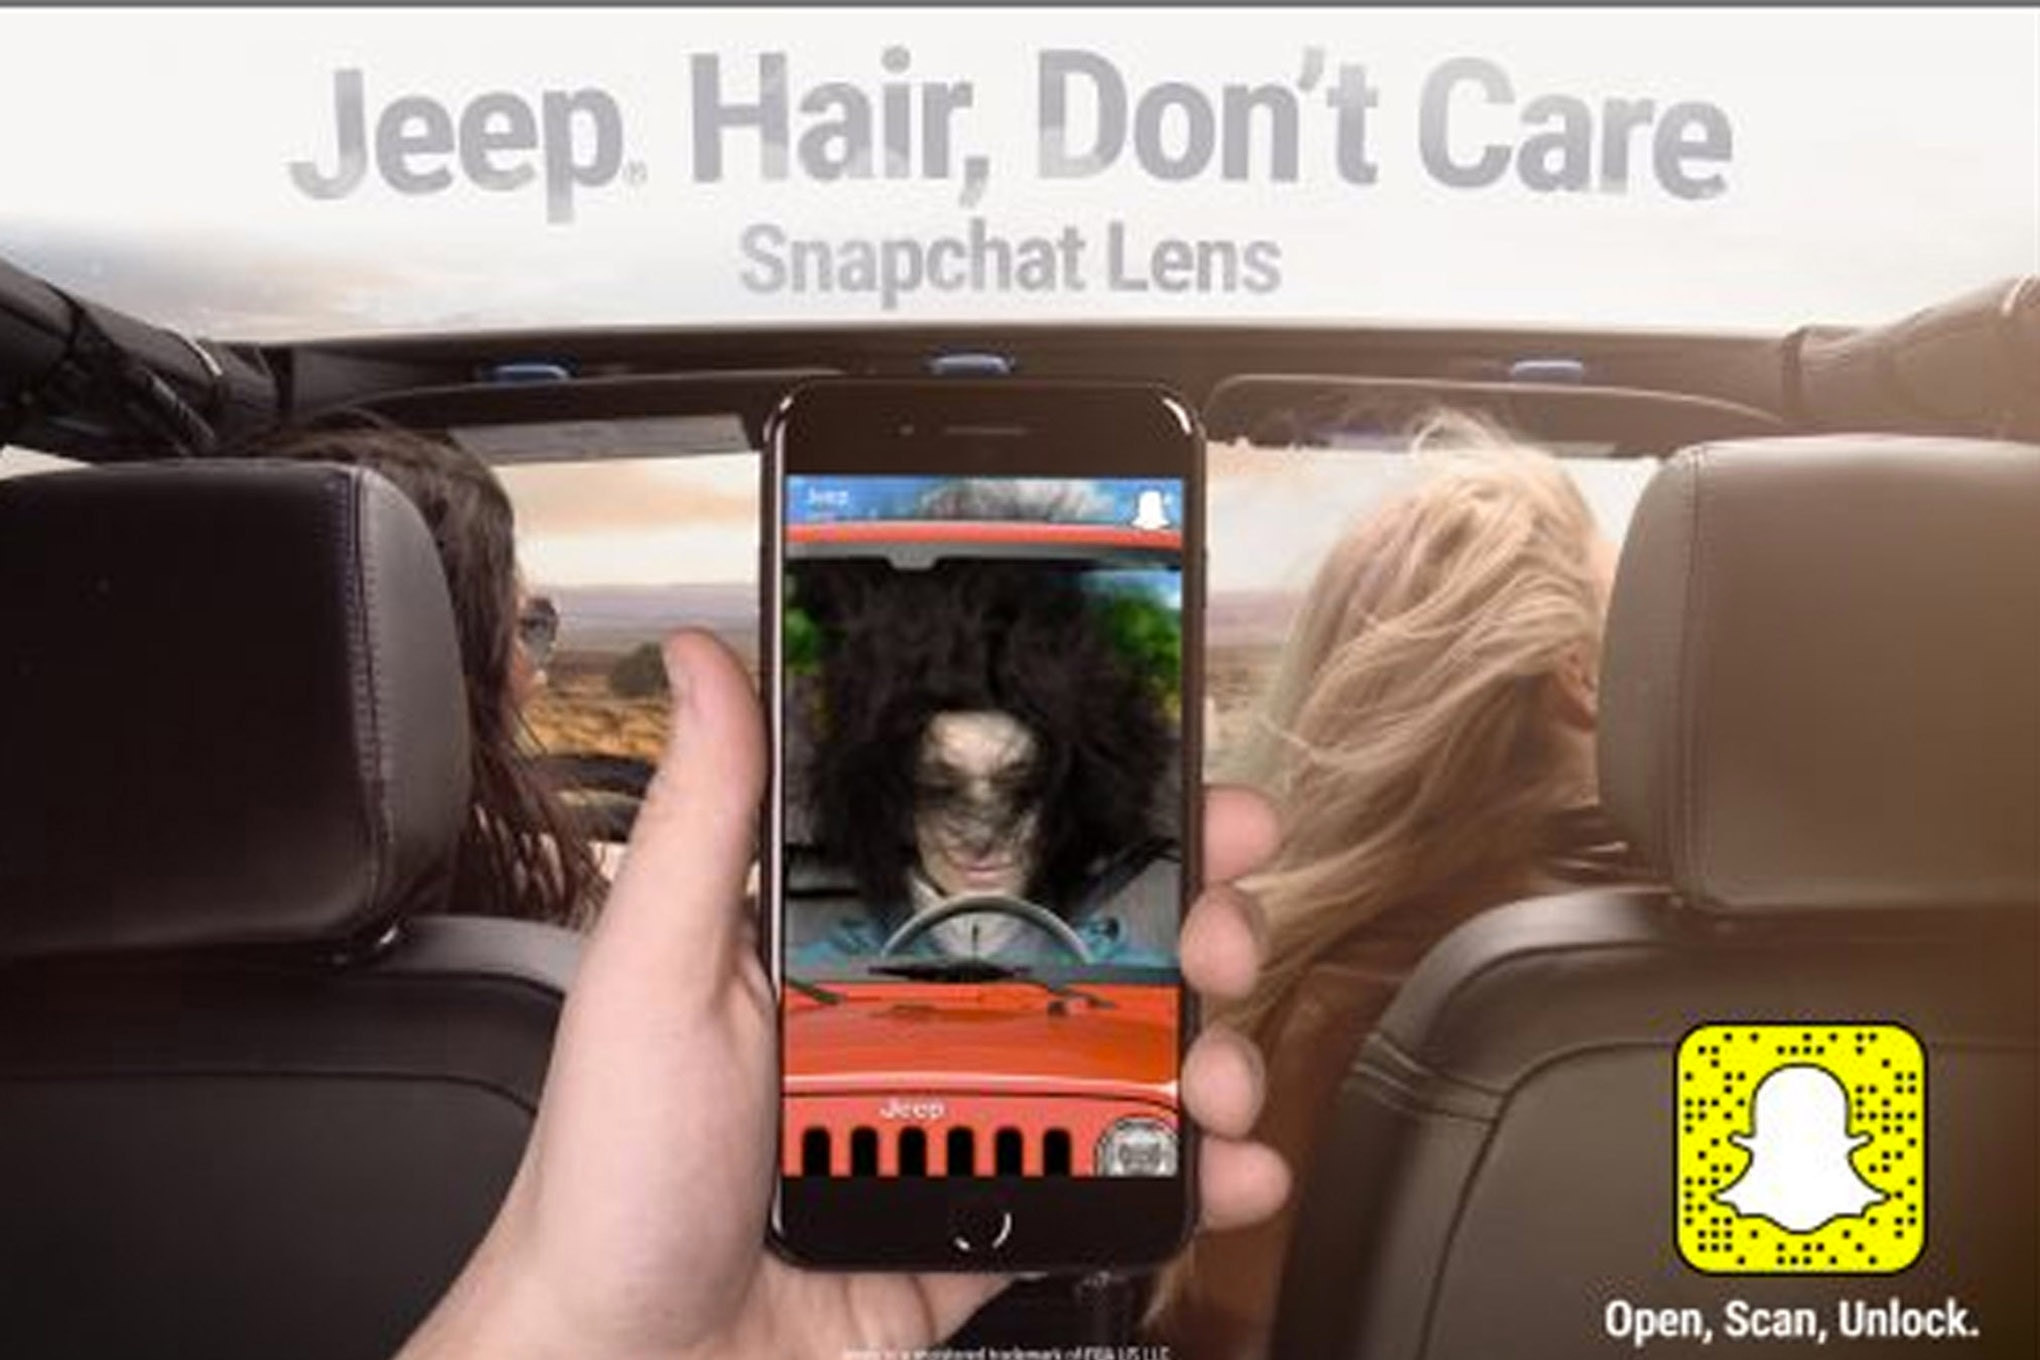 auto news jp jeep jeep hair dont care snapchat lens facebook twitter instagram blog 4x4 day